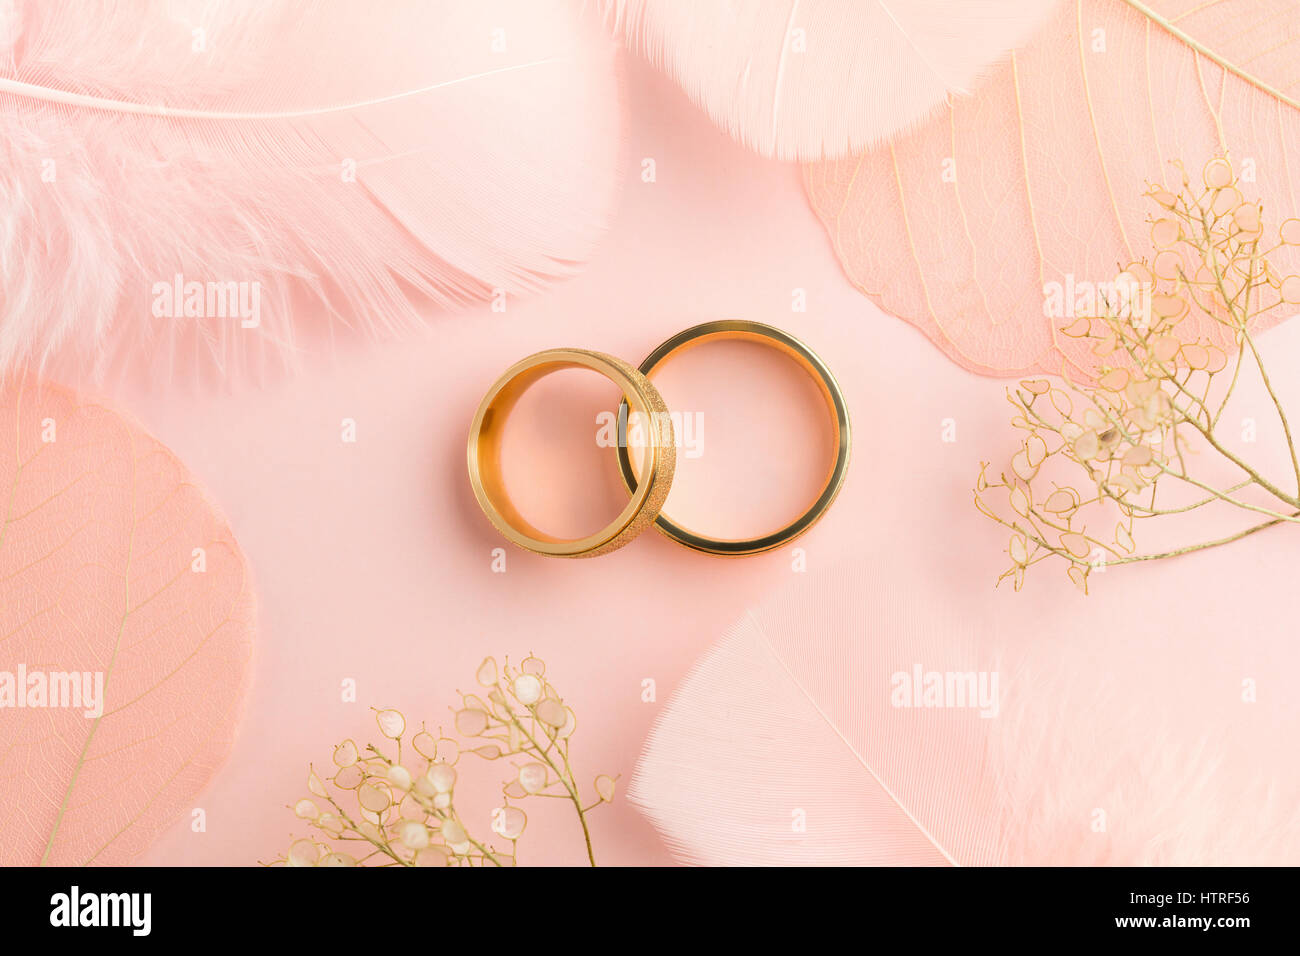 Elegant Love background - two golden rings and decorations angelic ...